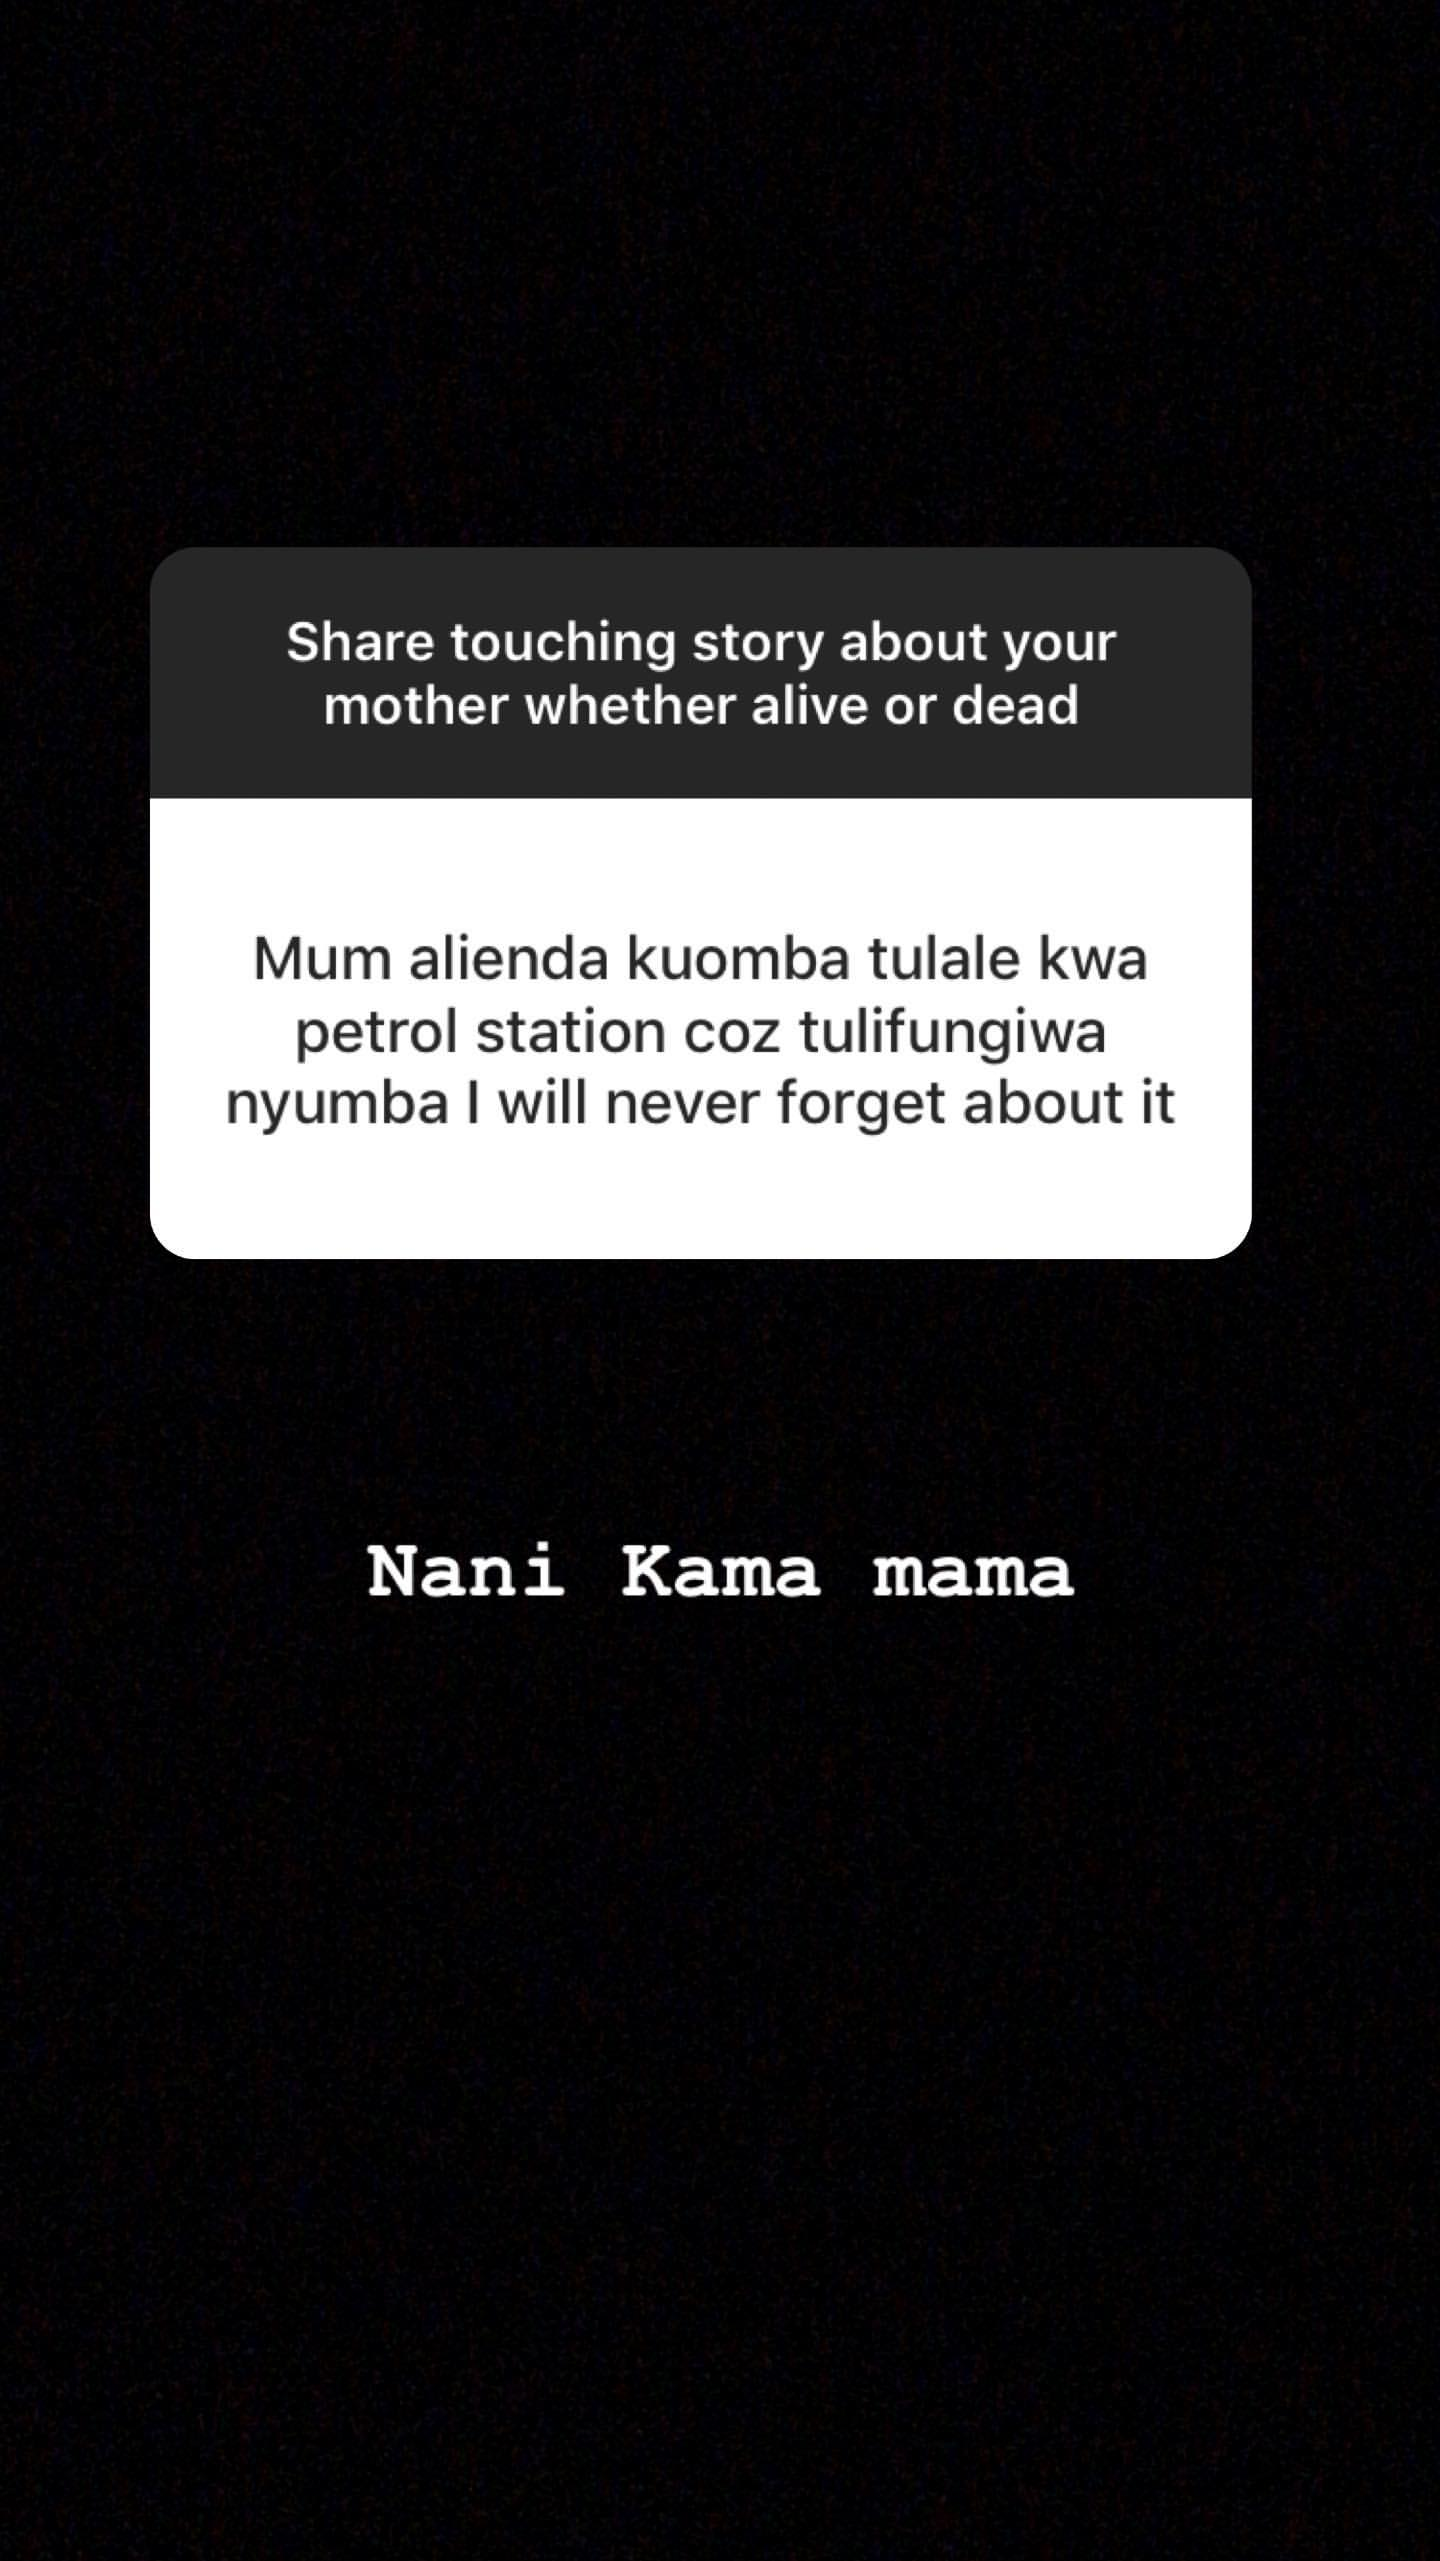 59189182 663310734111397 8319199107986351098 n - Tear-jerking! Mpasho fans break down sharing touching stories about their mothers